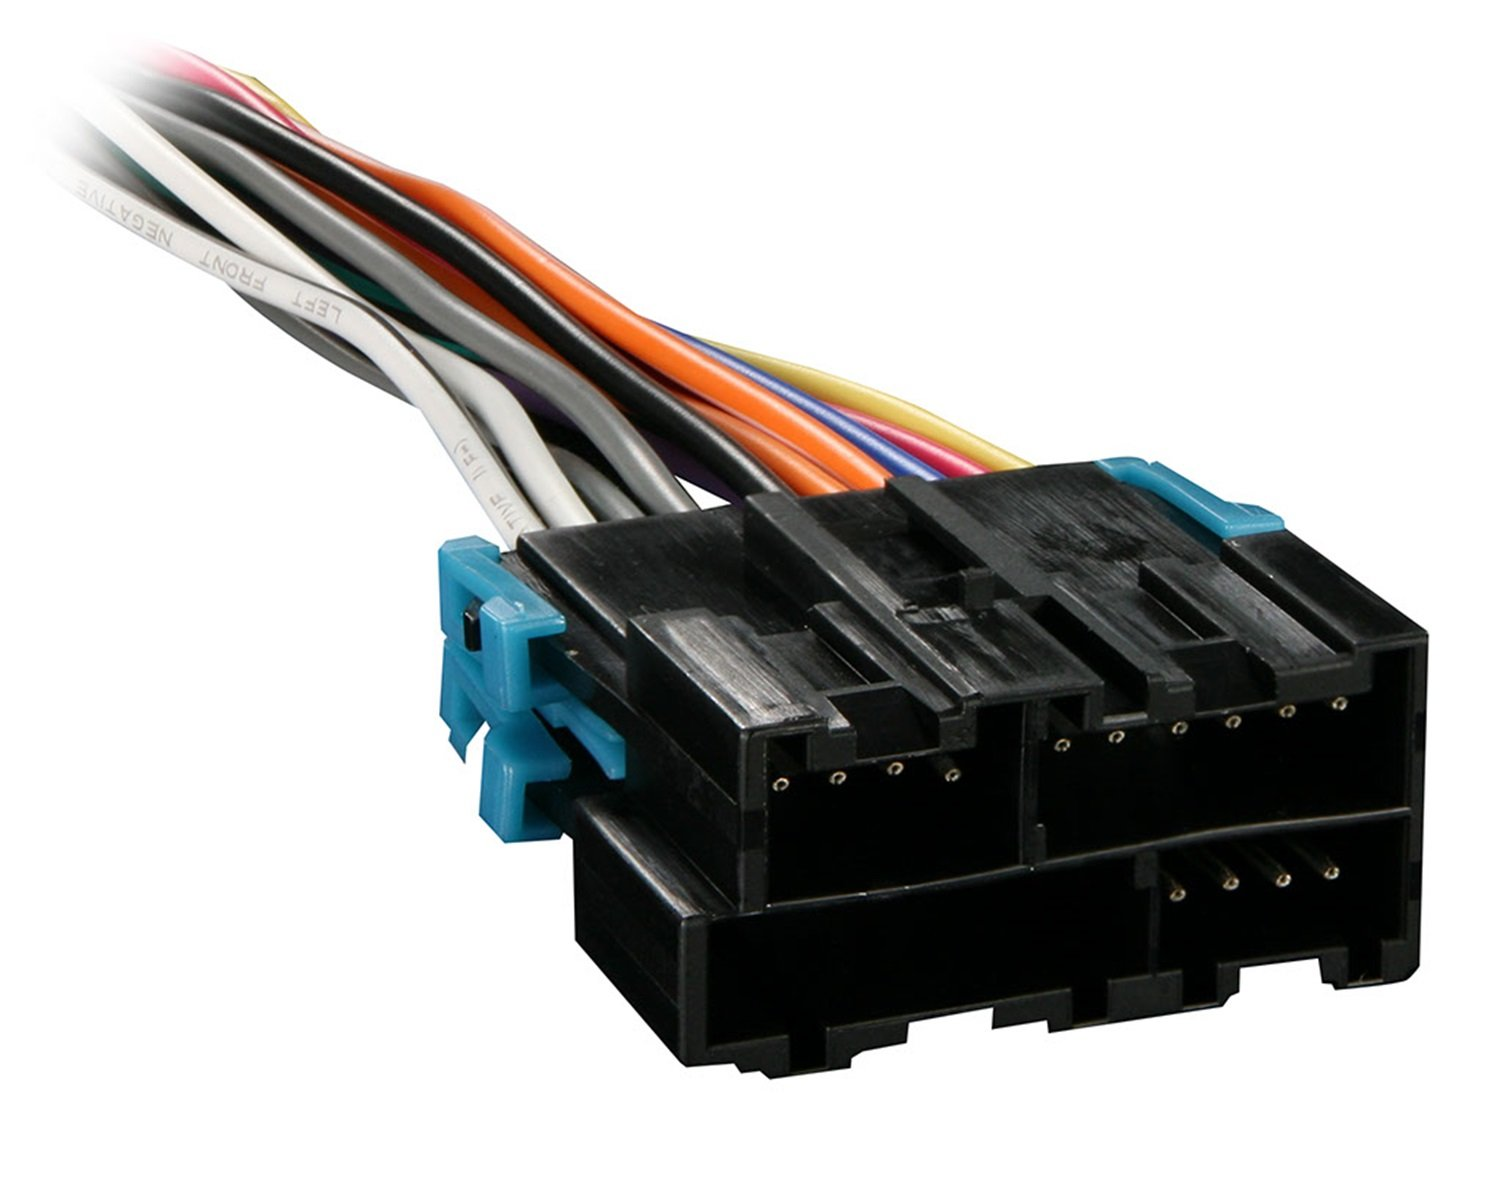 61 CwjZt1hL._SL1500_ radio wiring harnesses amazon com wiring harness for car stereo installation at alyssarenee.co